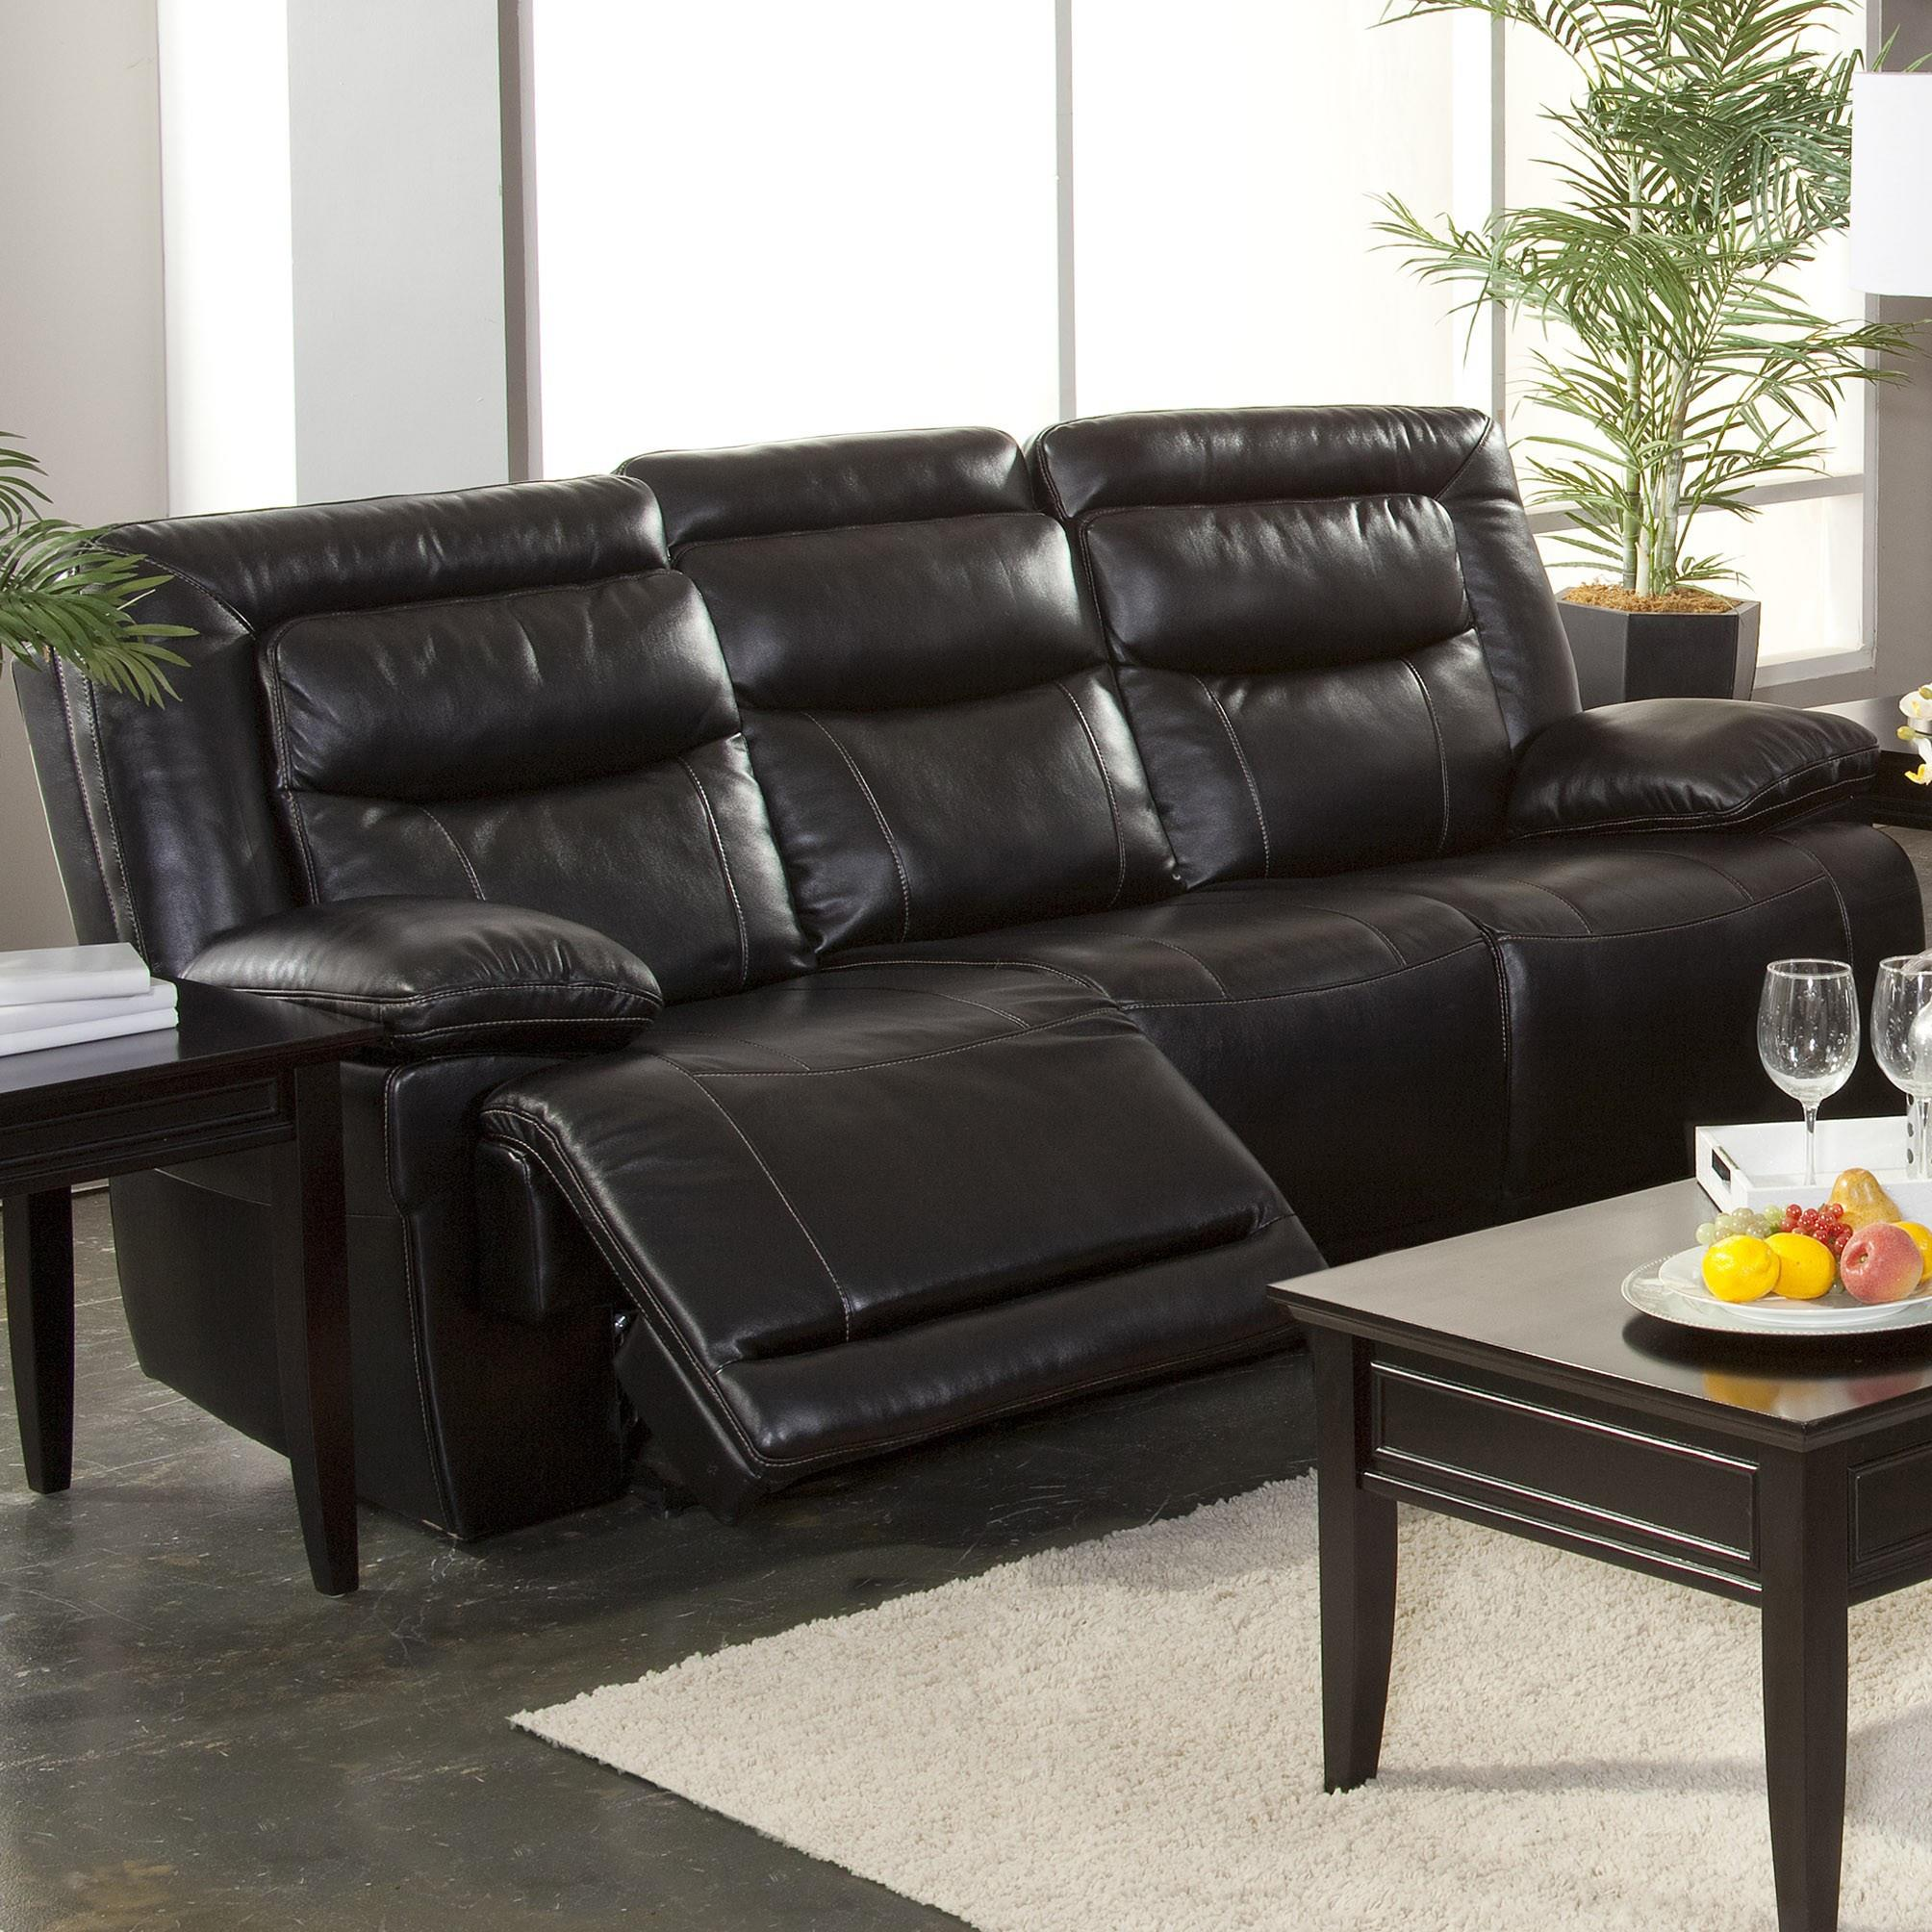 New Classic Torino Casual Power Motion Sofa   Item Number: 22 246 32